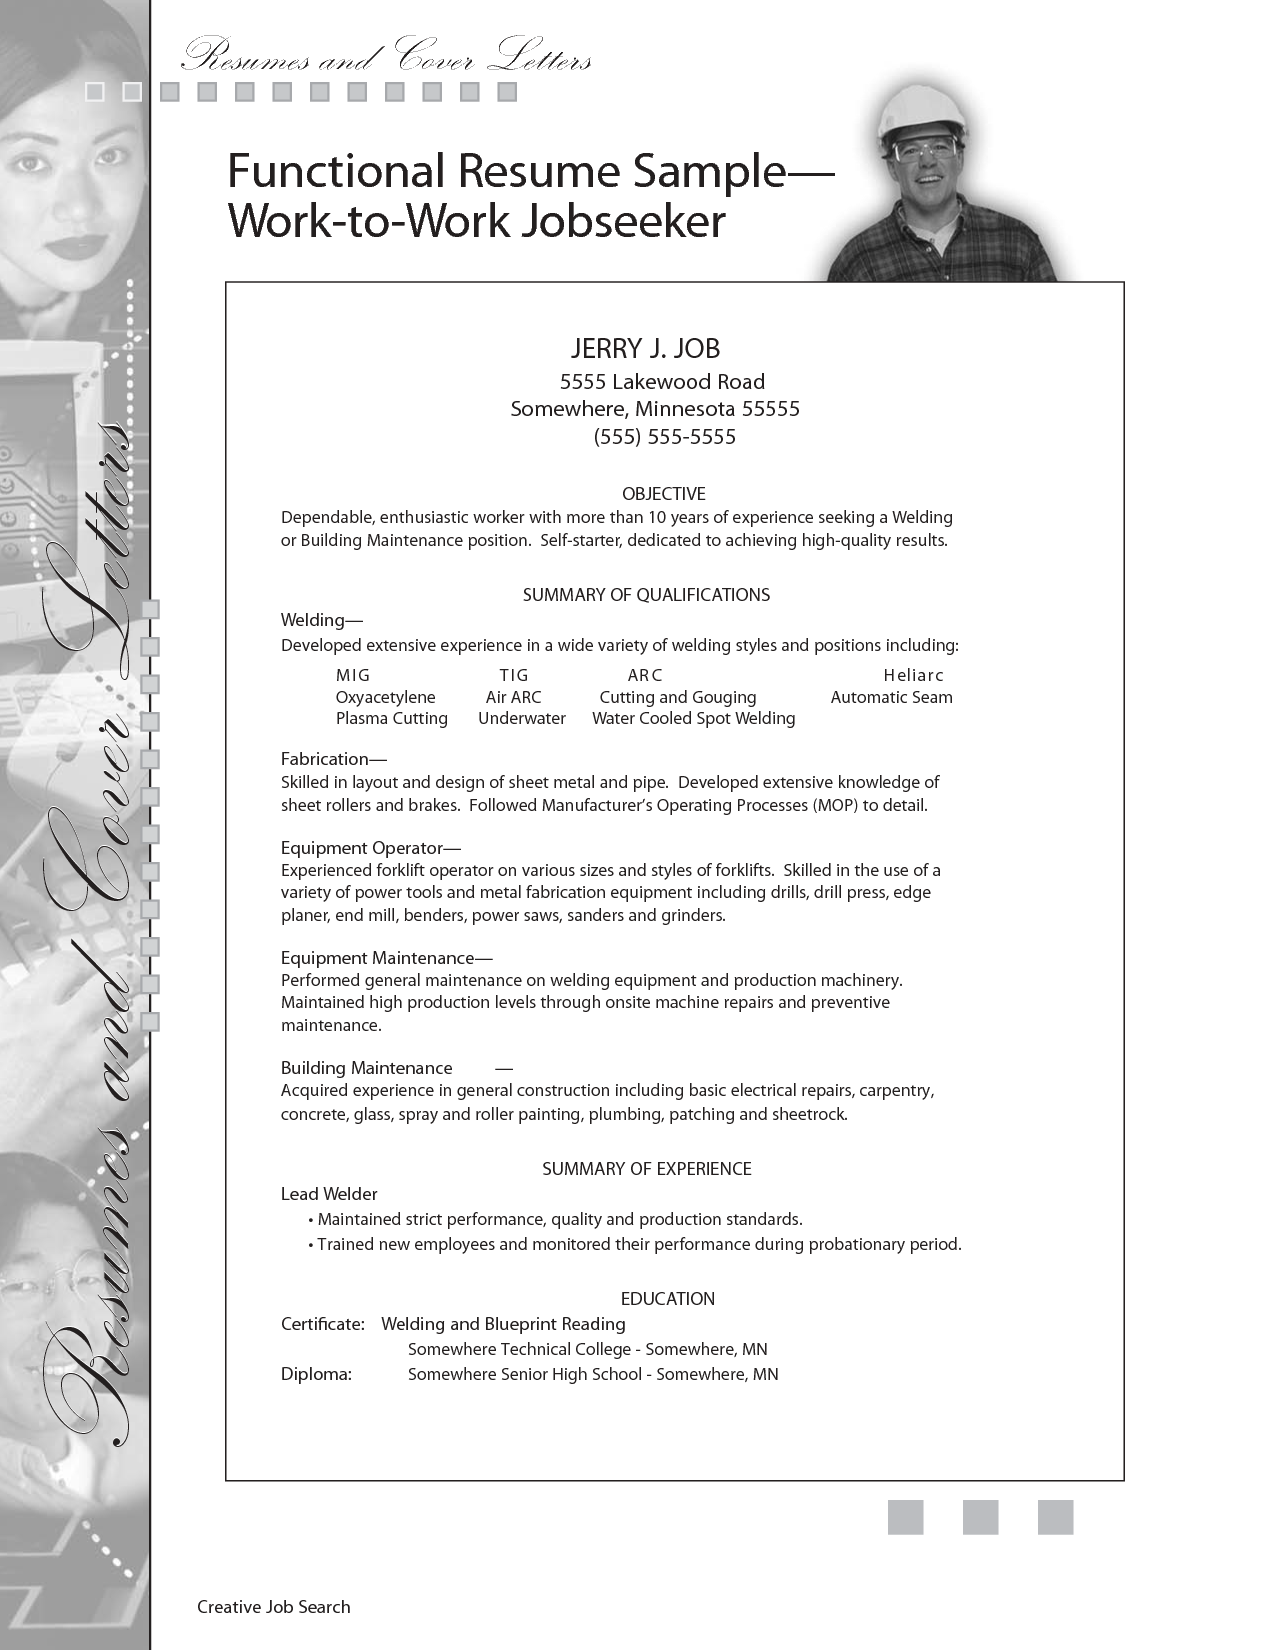 Building Engineer Resume Classy Scope Of Work Template  Welding Ideas  Pinterest  Sample Resume